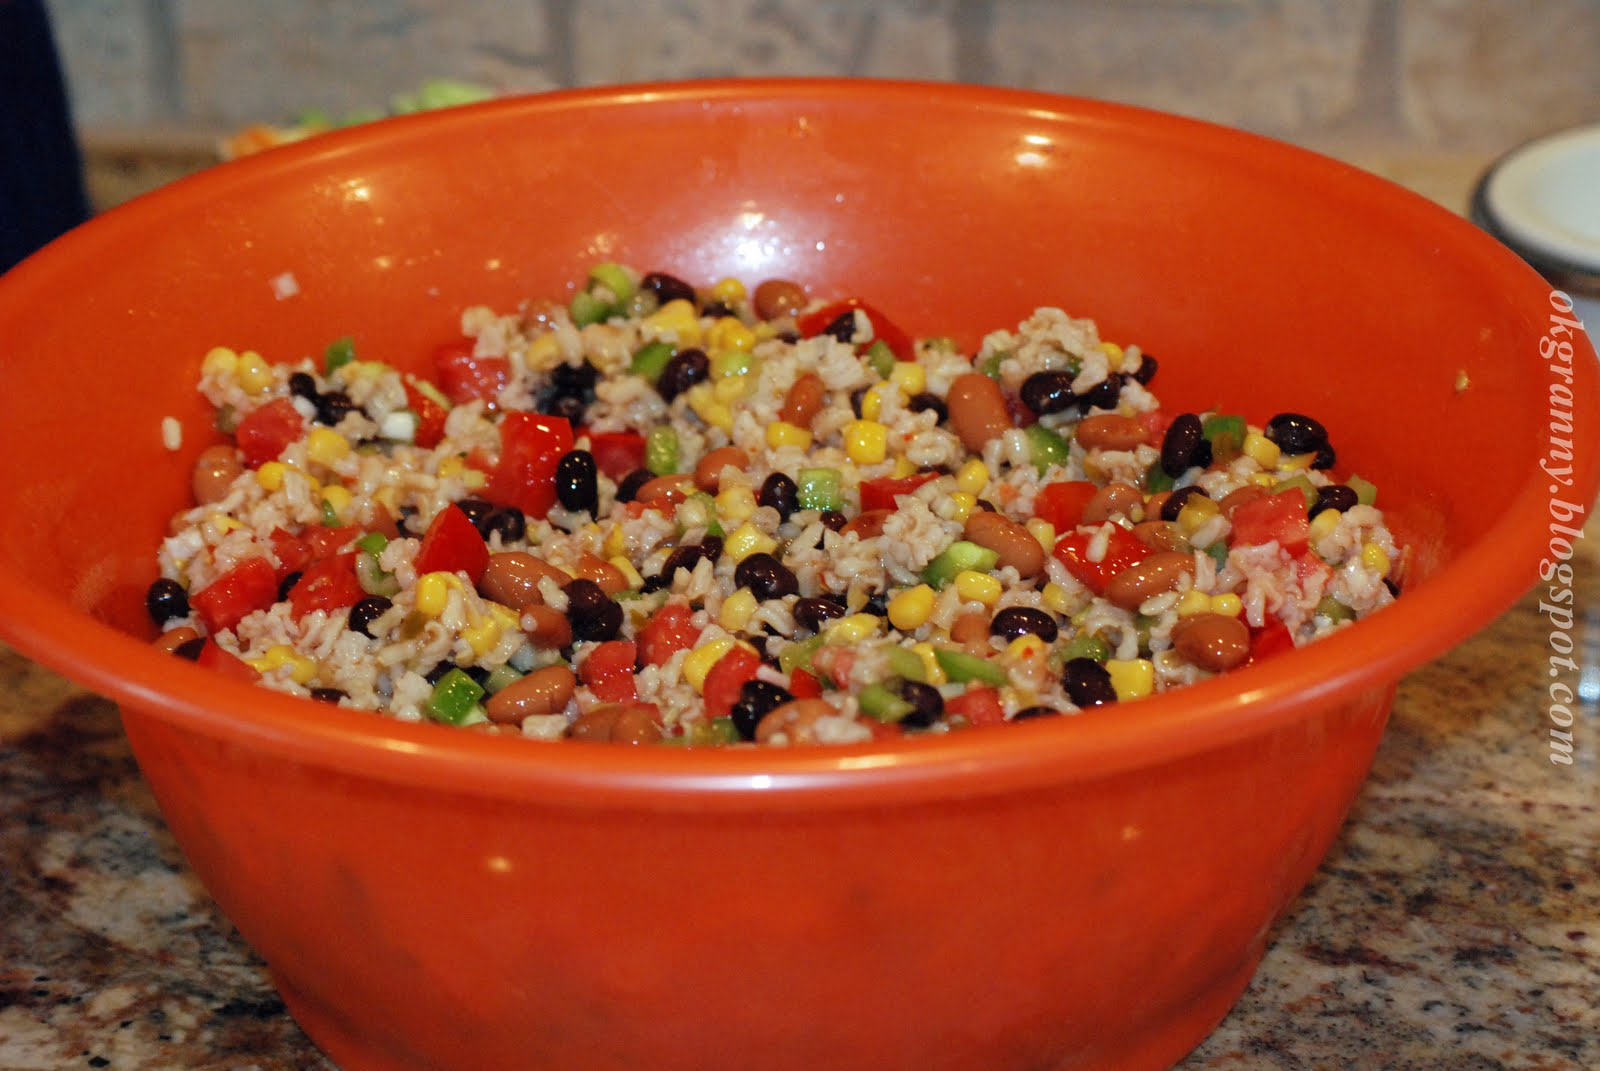 An Oklahoma Granny: Mexican Bean and Rice Salad - My Way